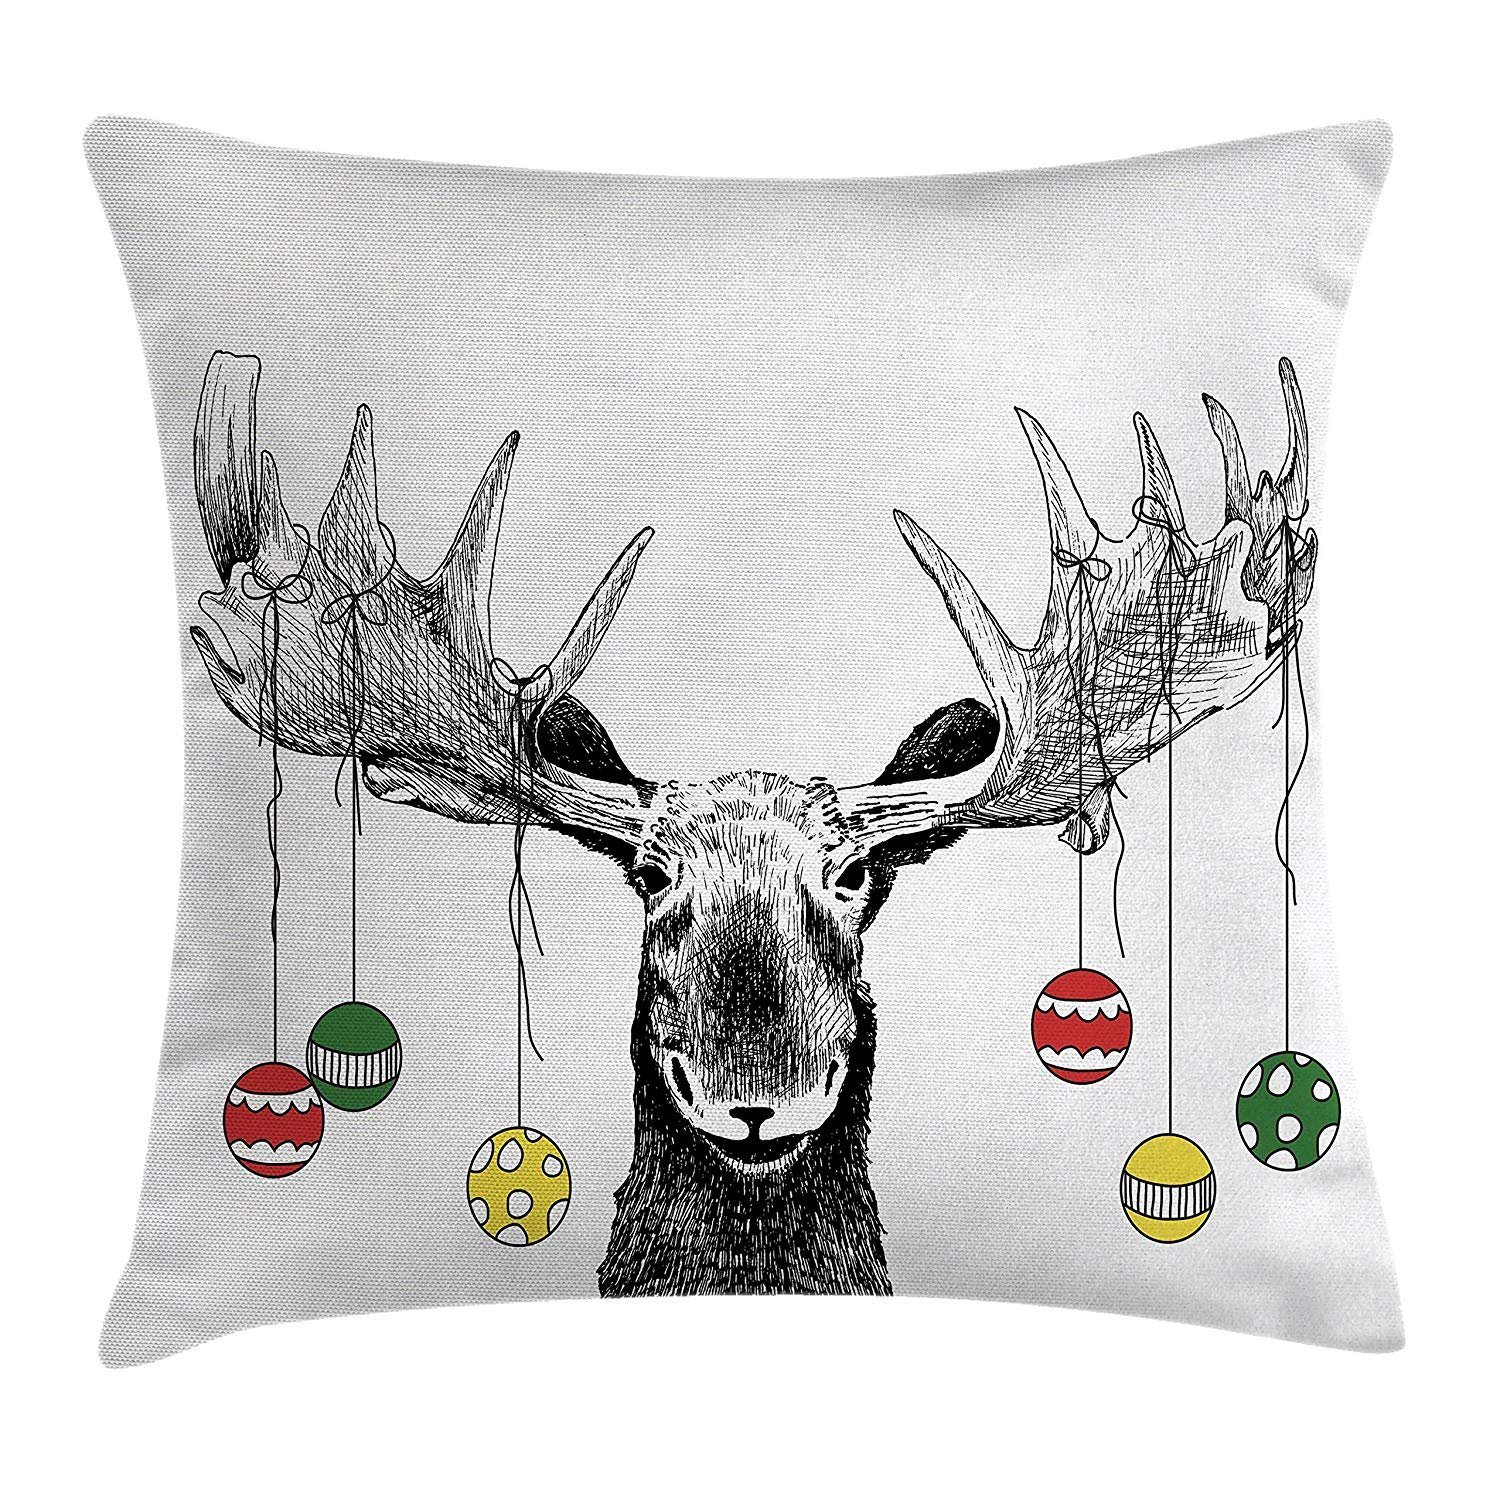 Moose Decor Throw Pillow Cushion Cover, Christmas Moose with Xmas Ornaments Balls Hanging from Horns Funny Noel Sketch Art, Decorative Square Accent Pillow Case, 18 X 18 inches, Multi whhopily